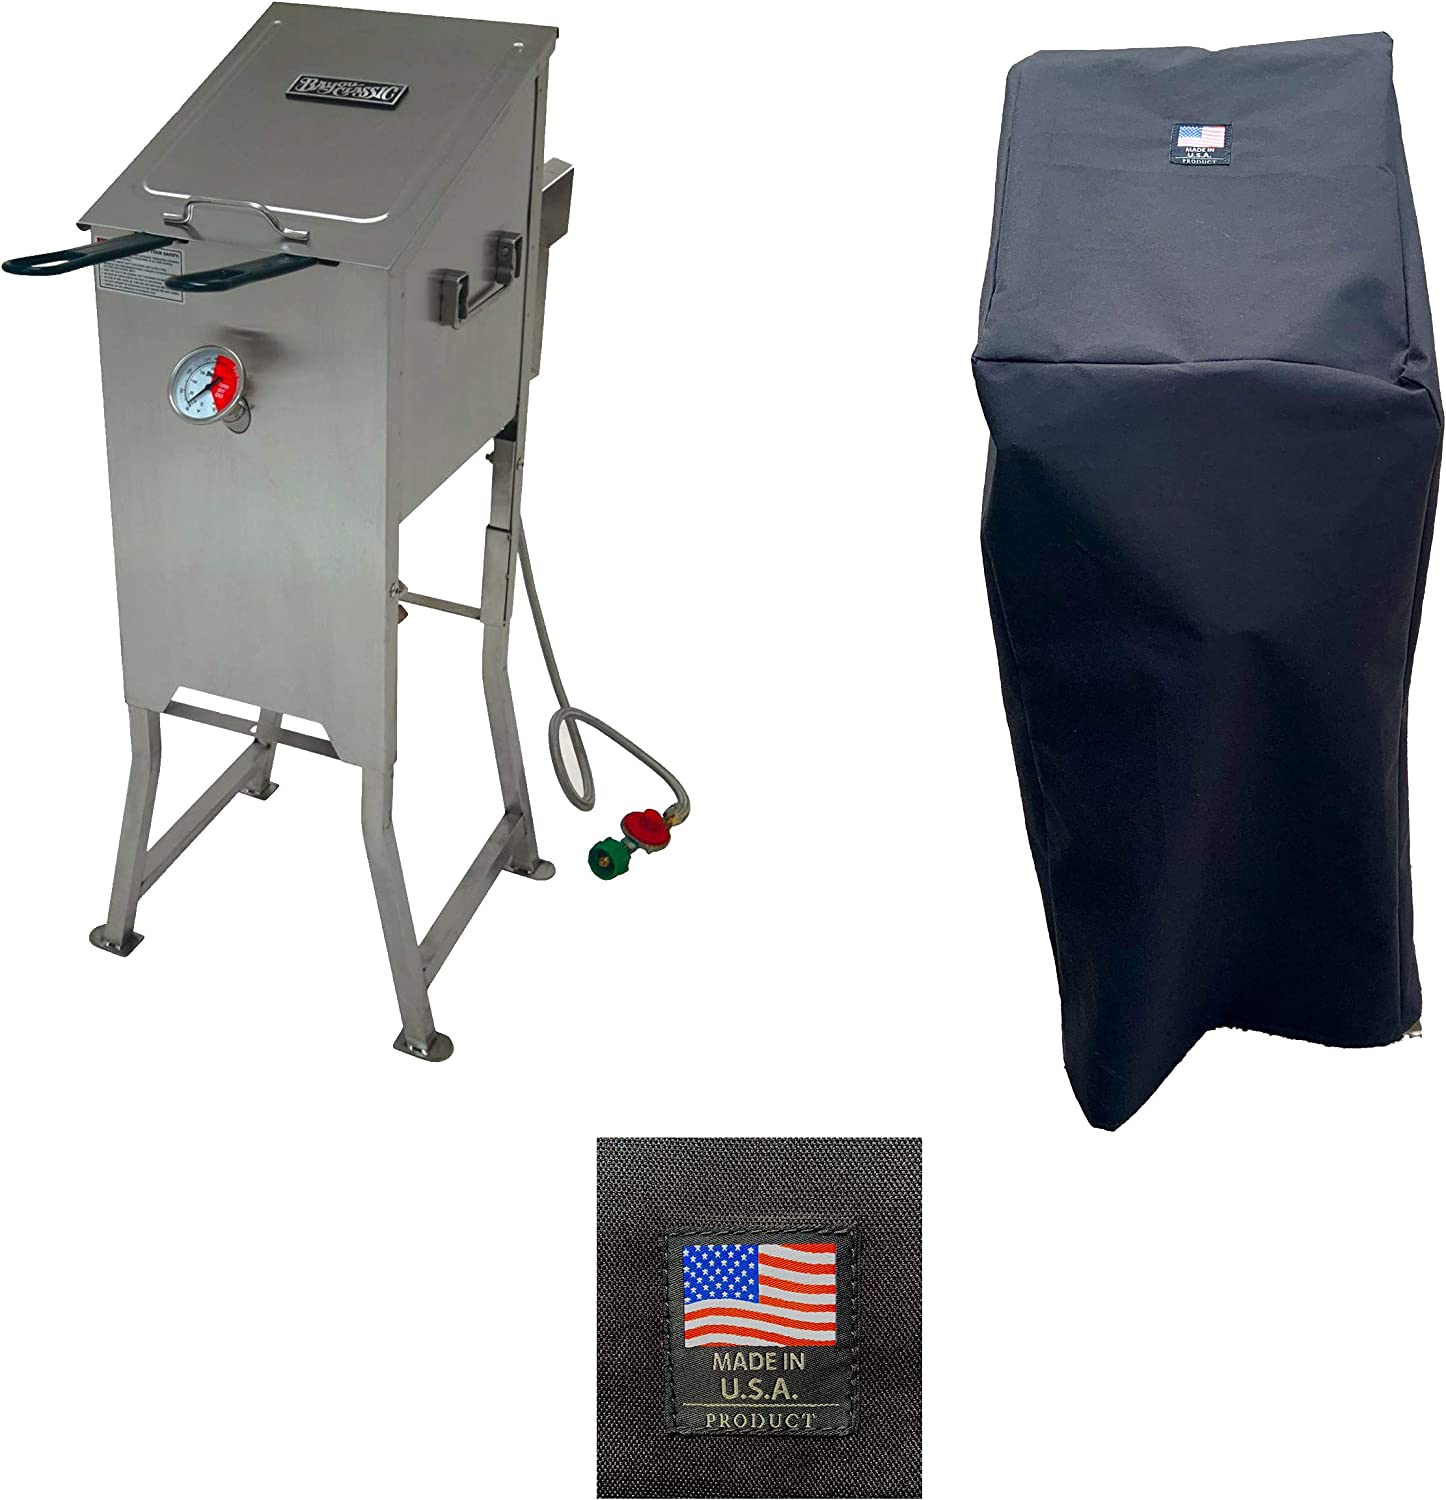 Bayou Classic 700-701 Canvas Cover 5004 Full Length Custom Made For 4 Gallon Deep Fryer Protection From the Elements Made in the USA